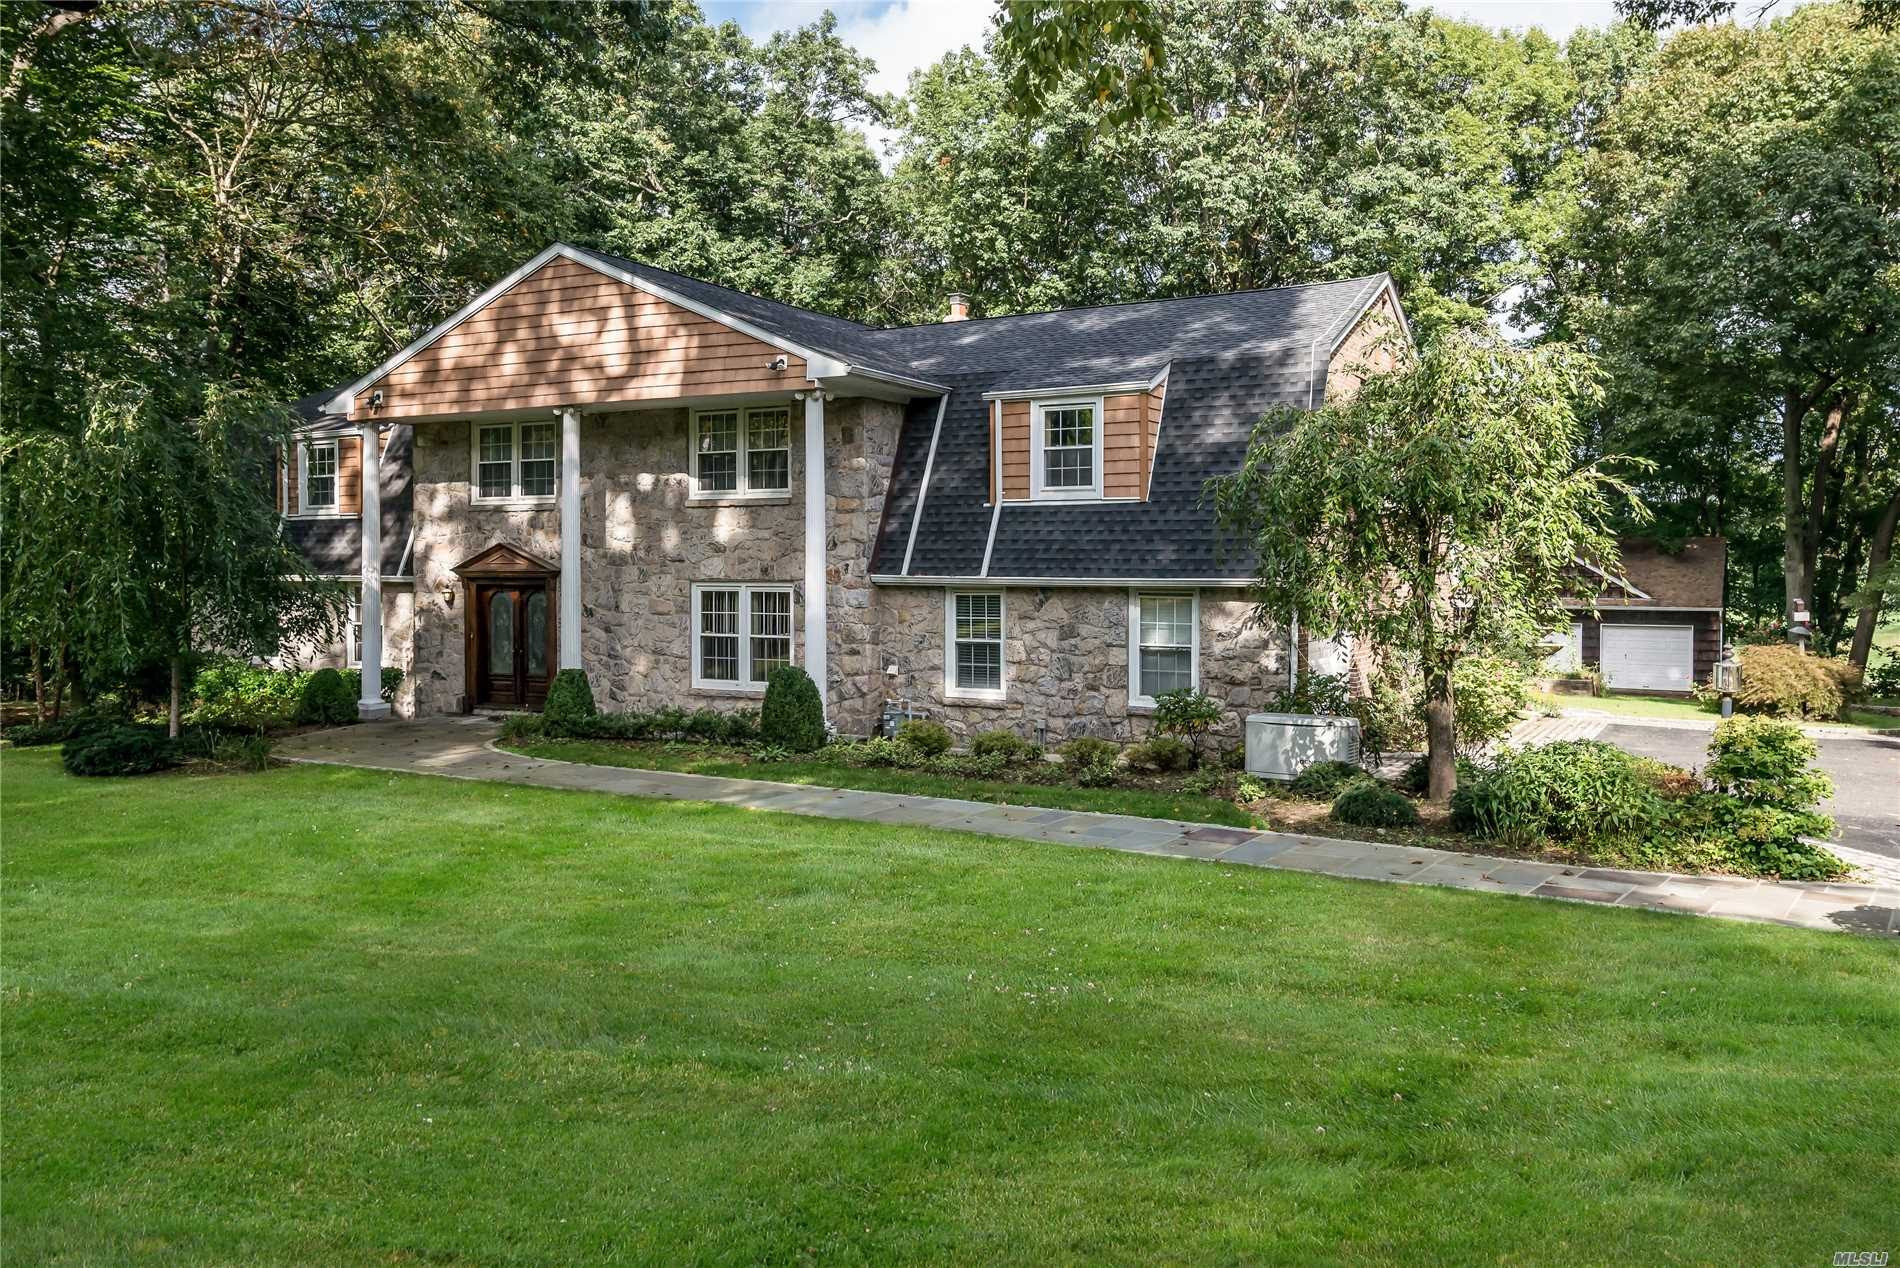 Custom Built Colonial Offers All The Features Today's Buyers Desire. Spacious Rooms Throughout With The Most Amazing Kitchen & Great Room Overlooking Spectacular Views Of Golf Course, Nestled On 2.25 Private Acres Abutting Engineers Country Club.This Location Is Quiet Yet Very Convenient To Everything, Close Proximity To Greenvale Train Station.